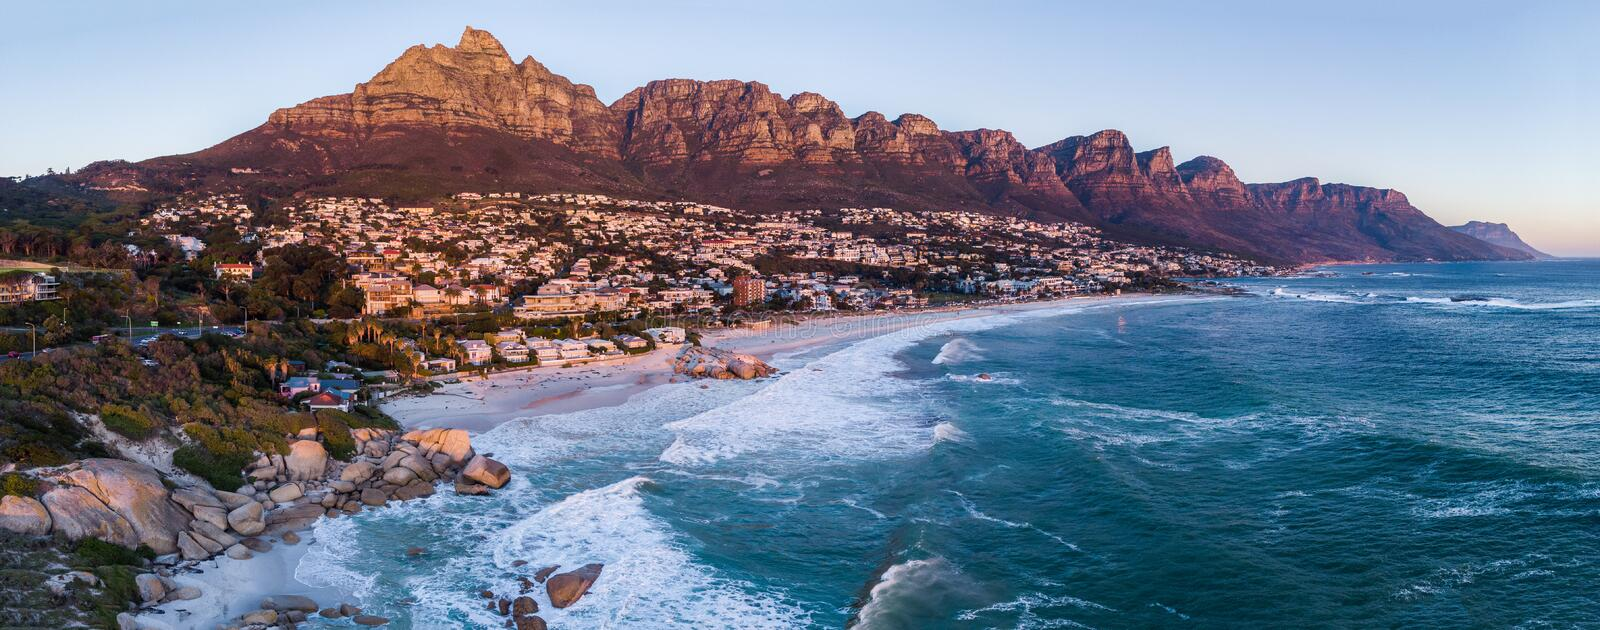 Aerial view on Camps Bay while sunset royalty free stock photos